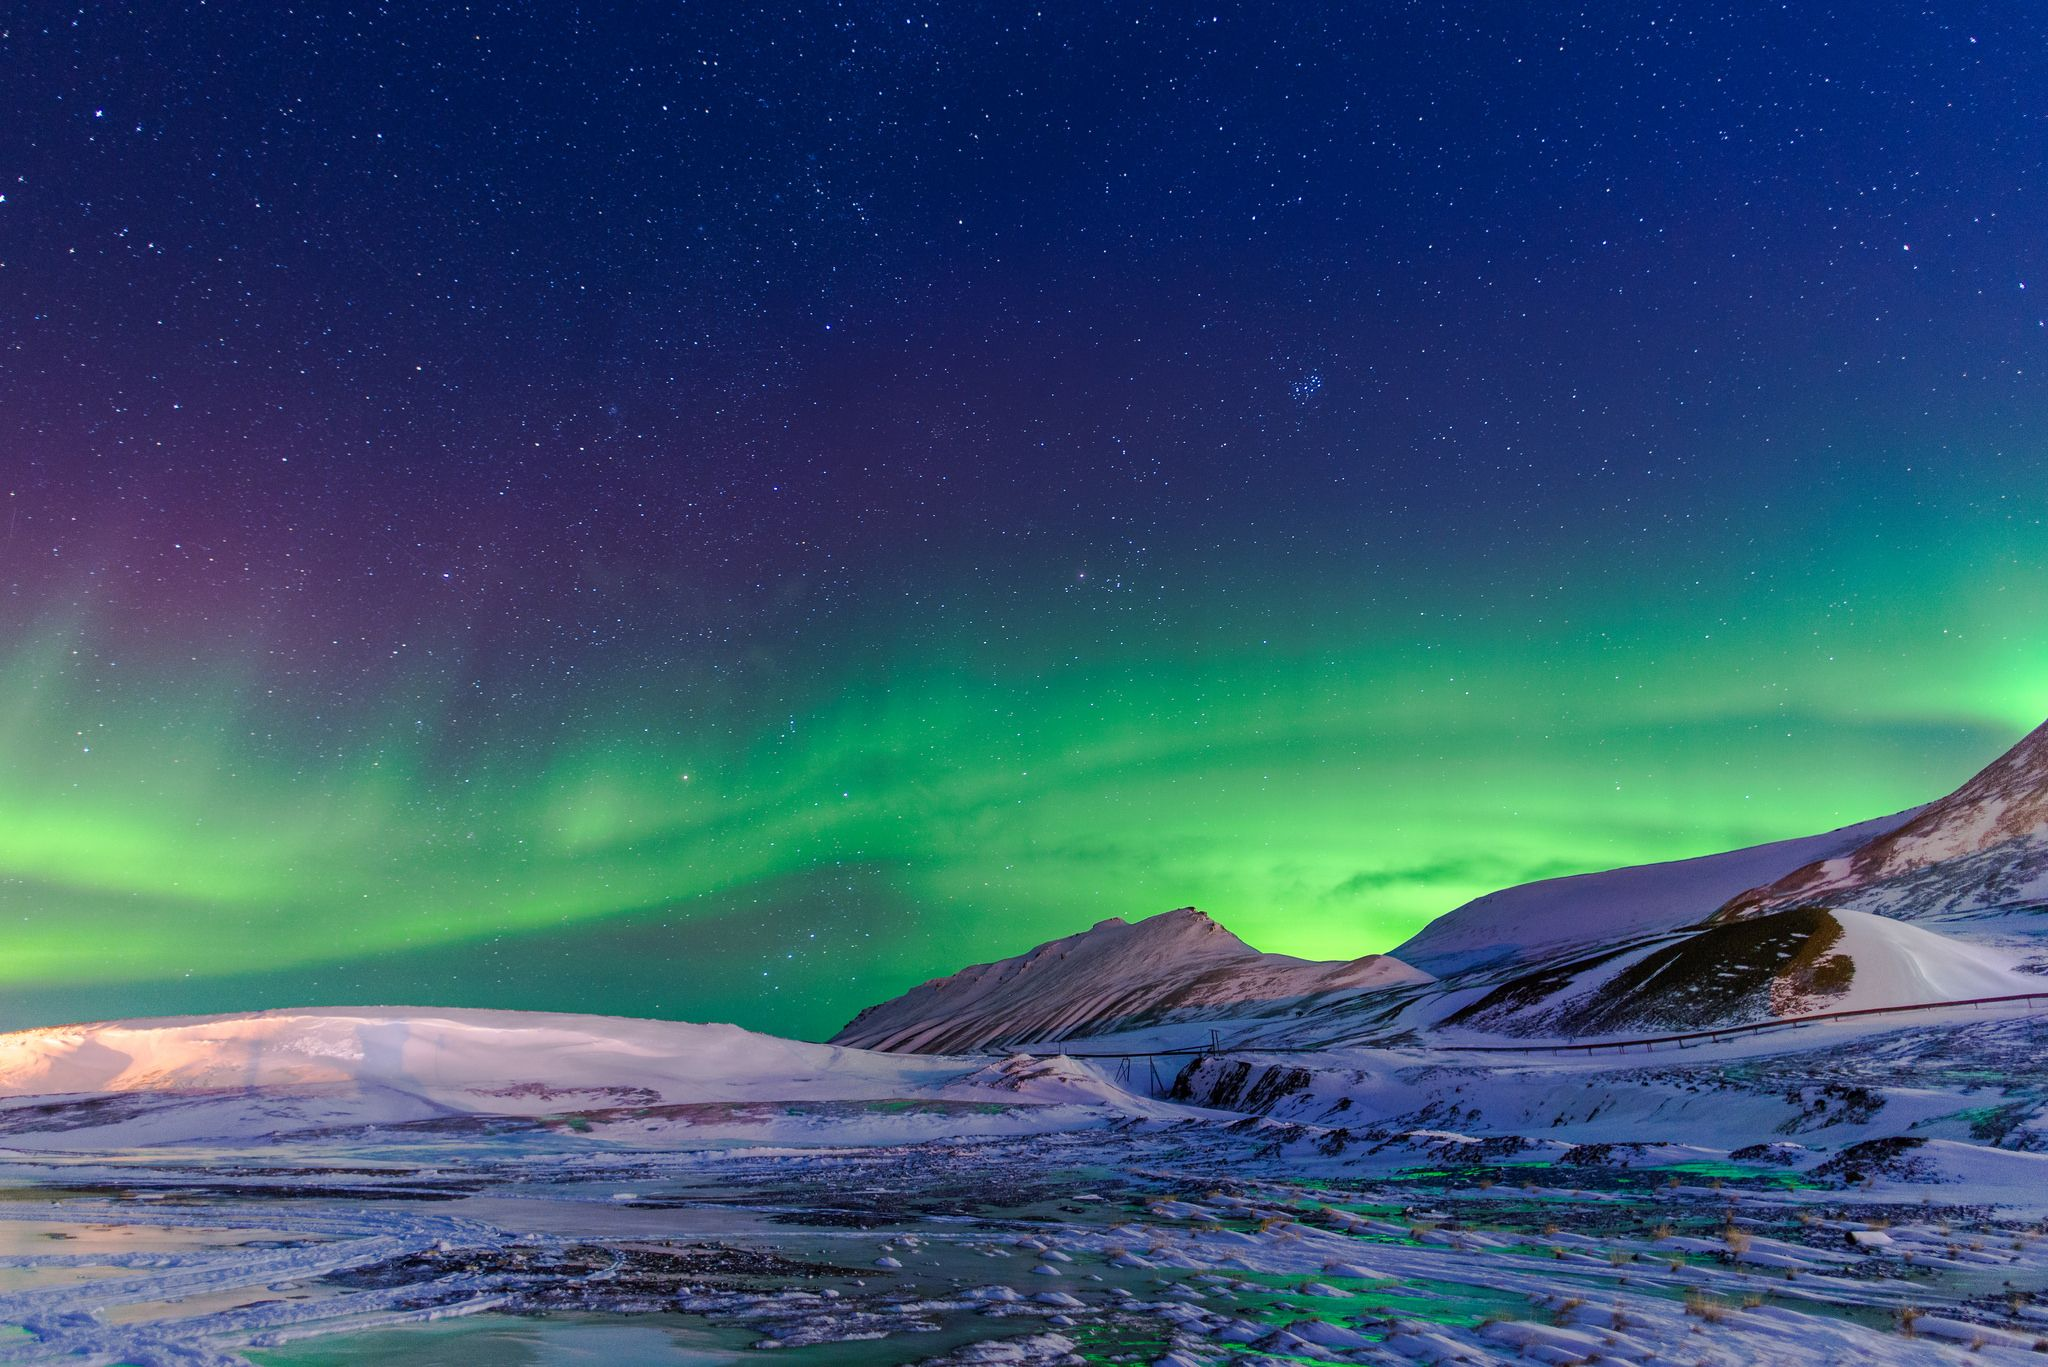 Clear skies with a chance of proton bombardment (Svalbard